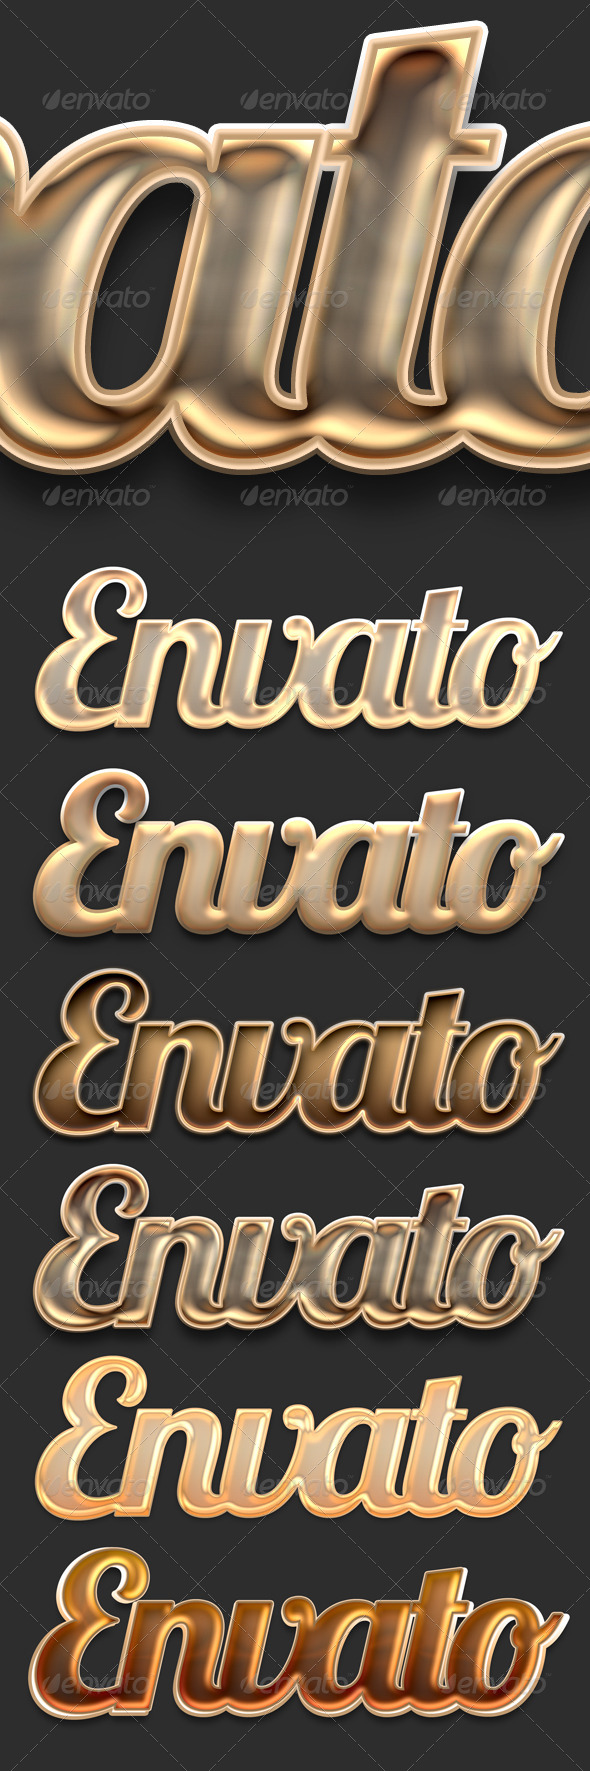 GraphicRiver Elegant Brown Text & Style 4309004